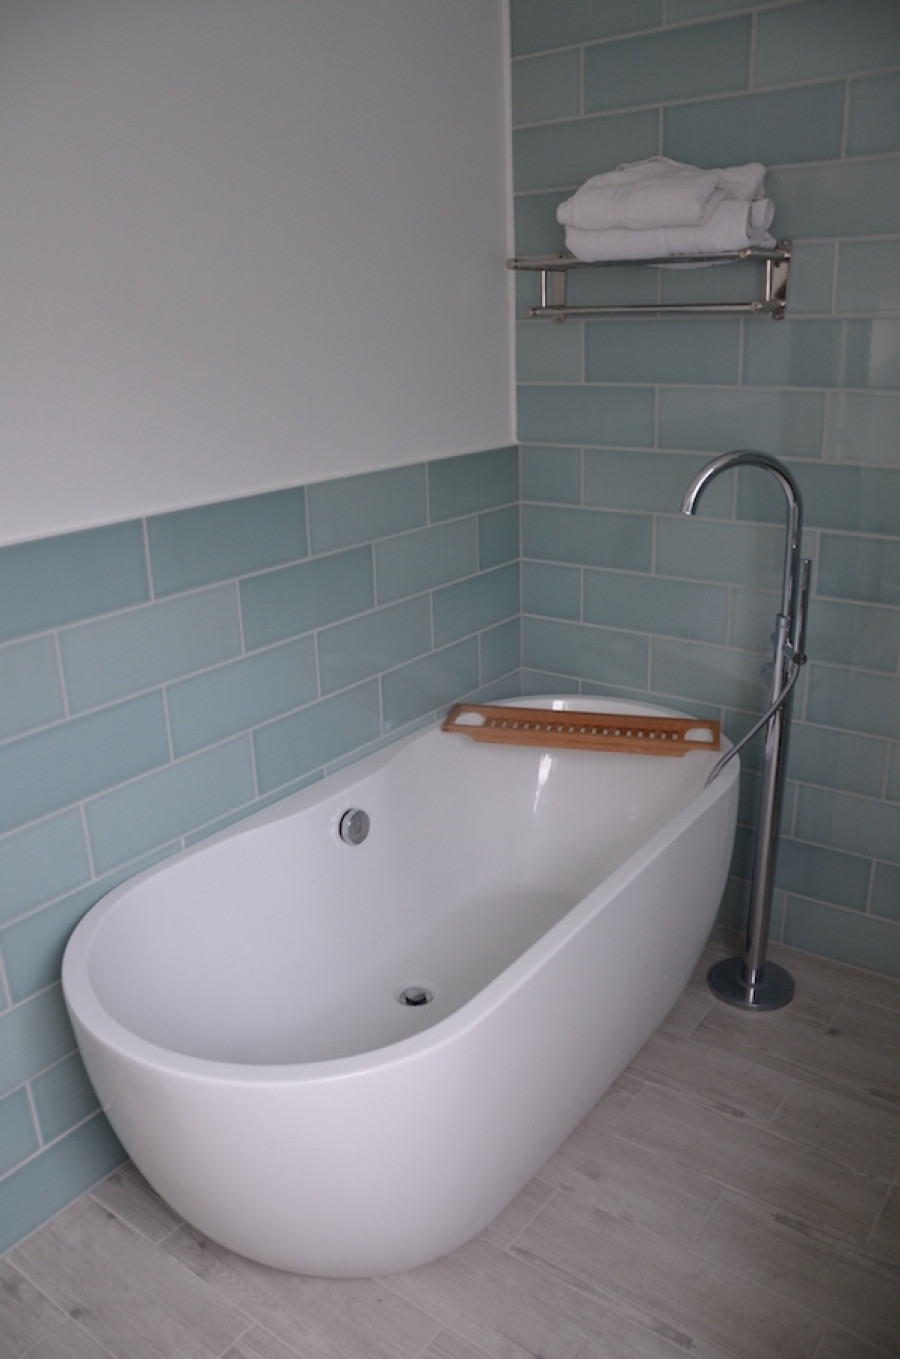 46 Castle Road Bathroom refurbishment